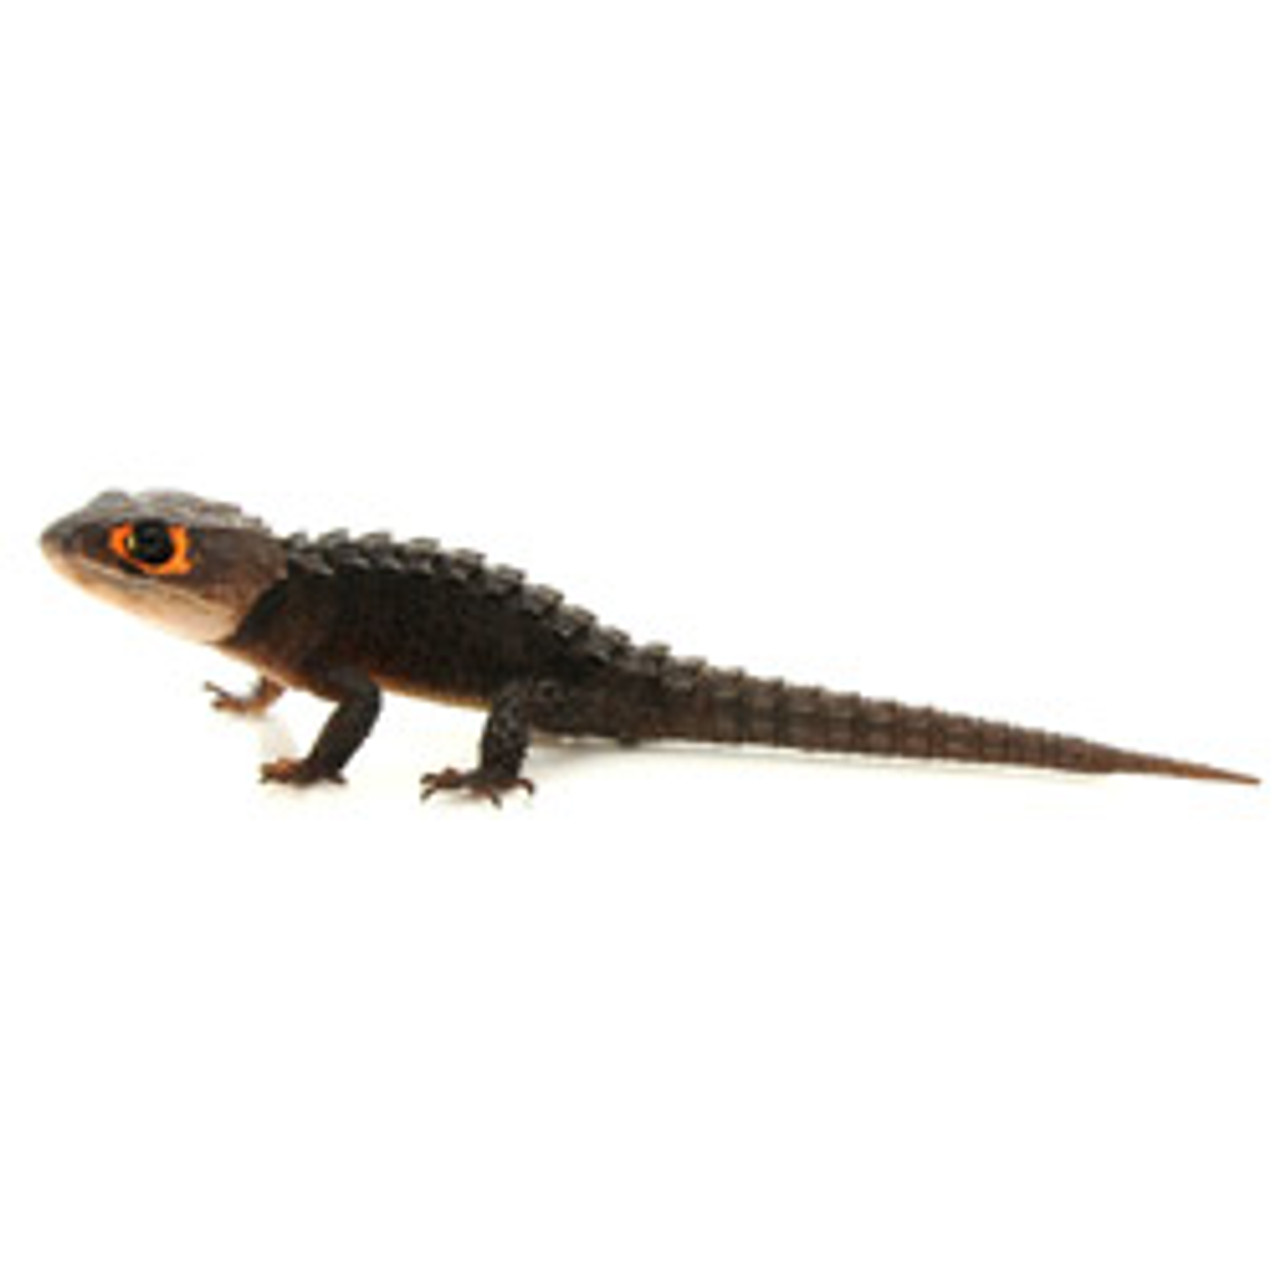 Red Eyed Armored Lizard (Tribolonotus gracilis)